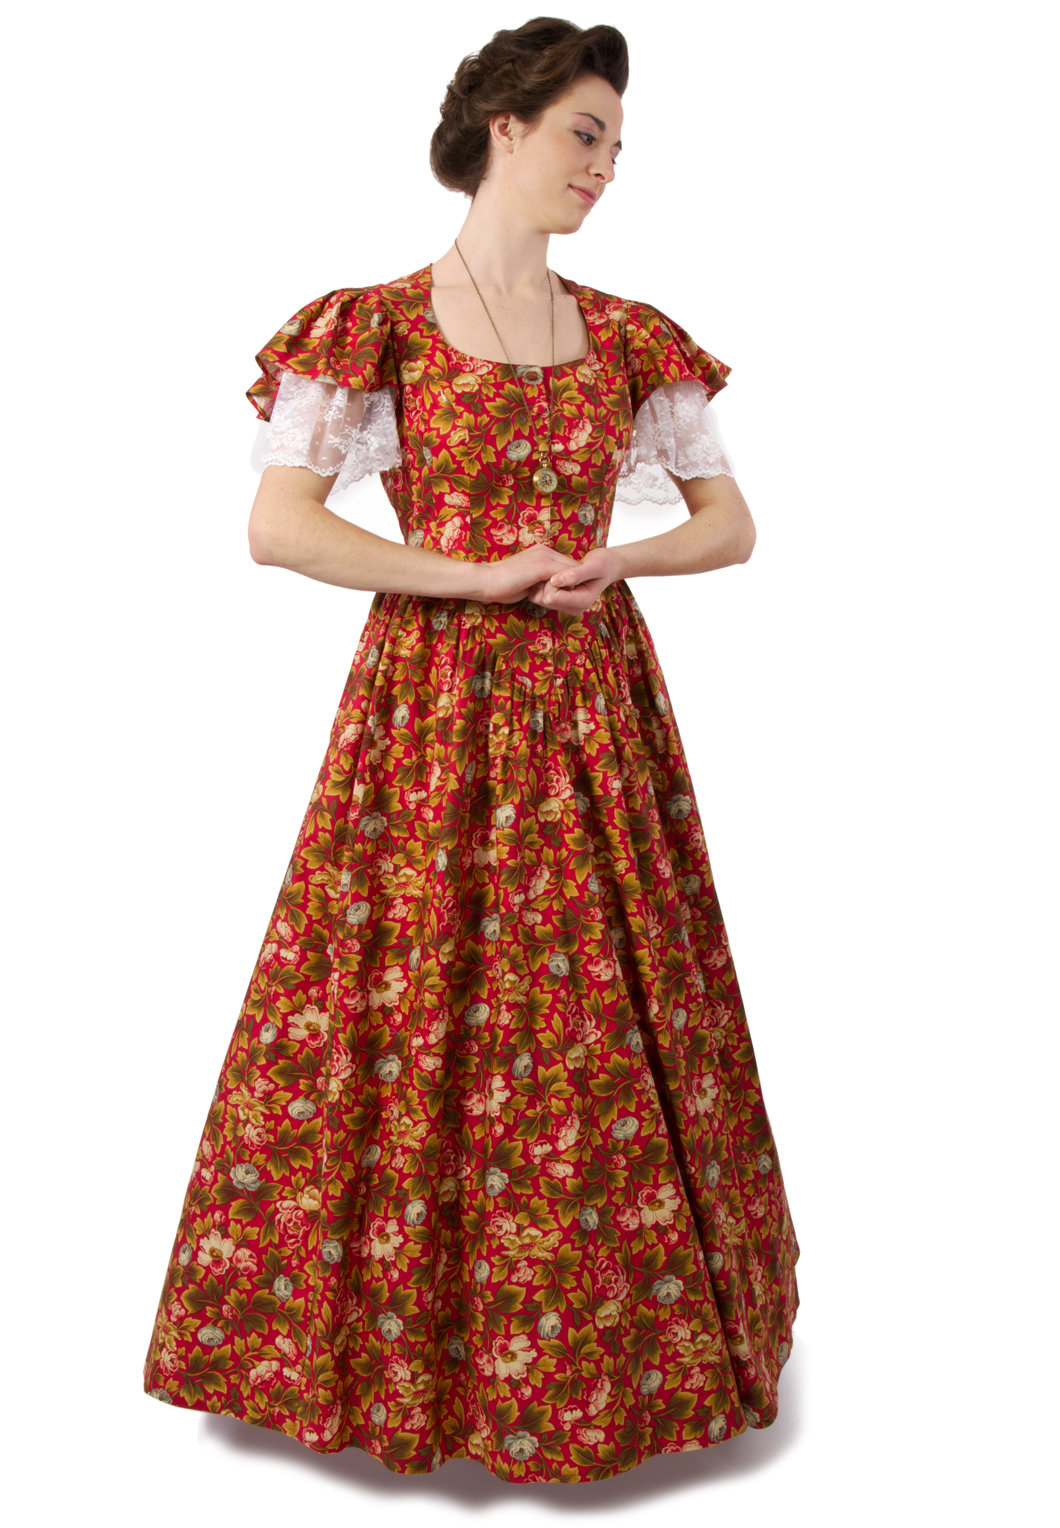 Relieving Fashioned Dresses 1800 Fashioned Dresses Names Mattie Dress West Dresses From Recollections wedding dress Old Fashioned Dresses